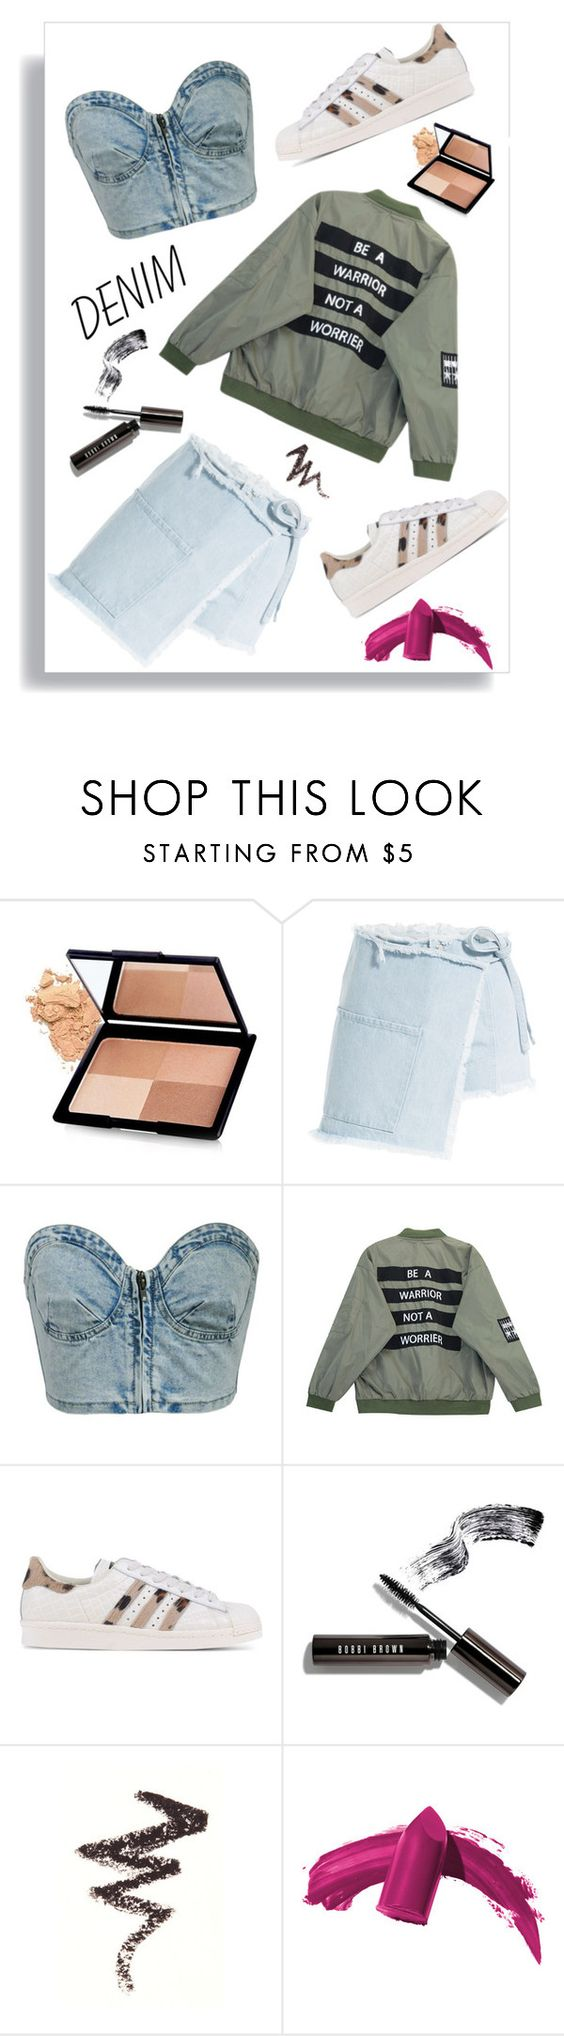 """Carpe denim"" by kit-kat-1987 ❤ liked on Polyvore featuring Sandy Liang, Chicnova Fashion, adidas Originals, Bobbi Brown Cosmetics, NYX, Elizabeth Arden and Denimondenim"